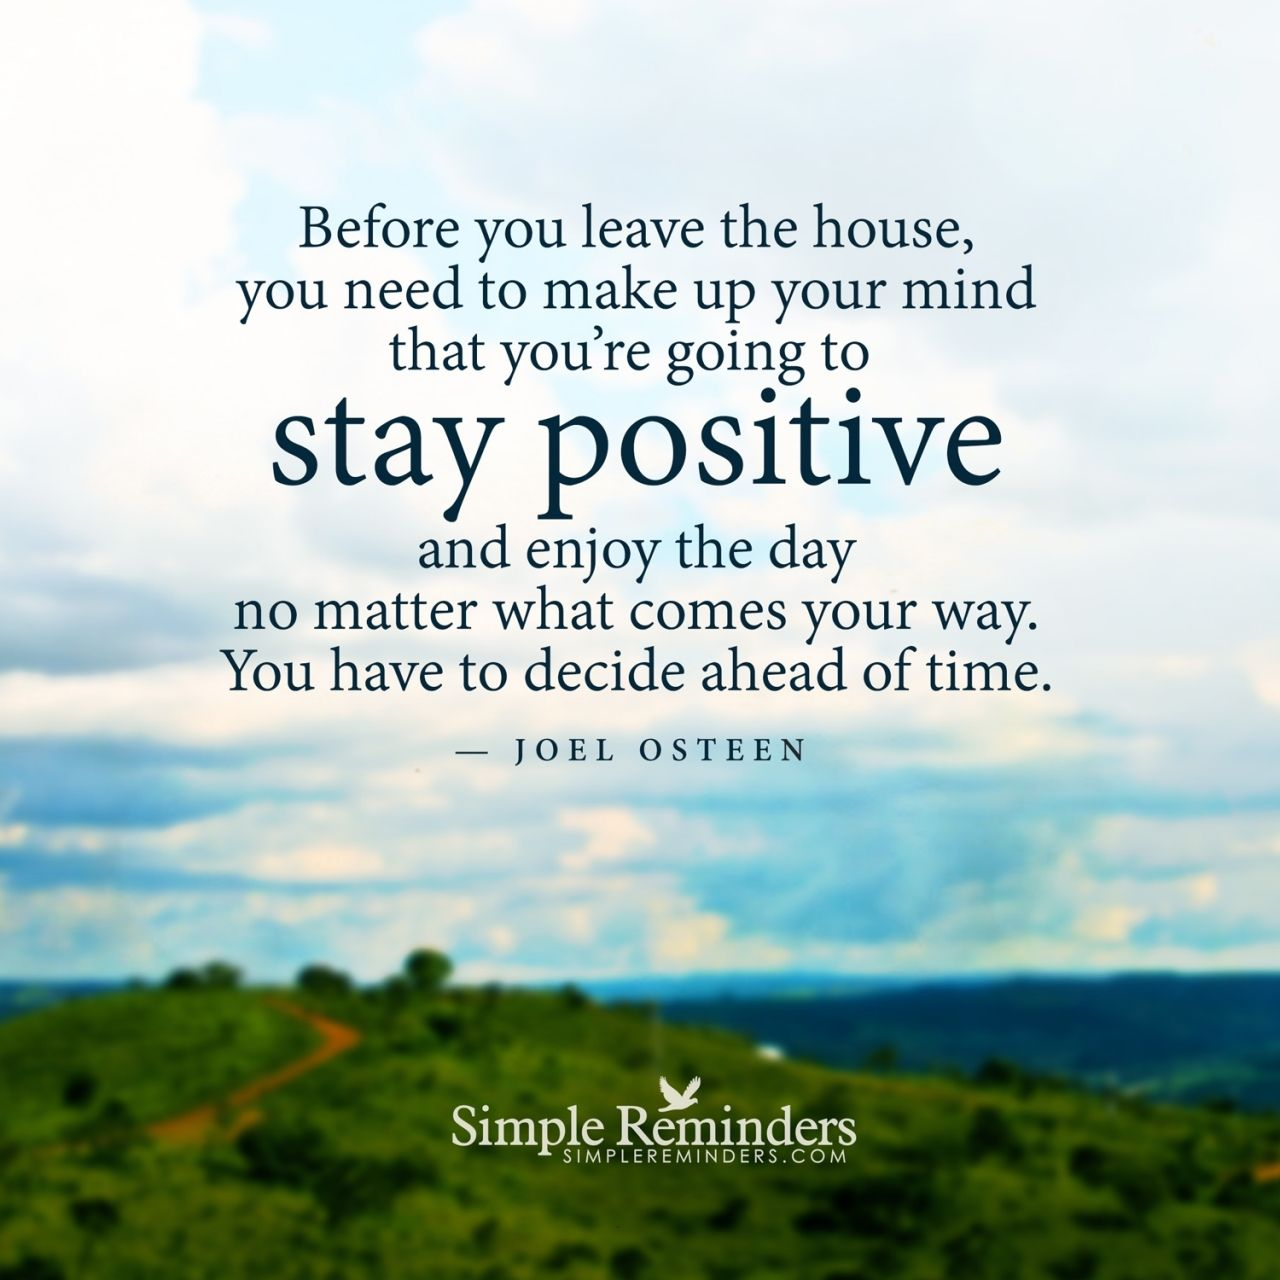 Joel Osteen Inspirational Quotes  Joel osteen quotes, Think